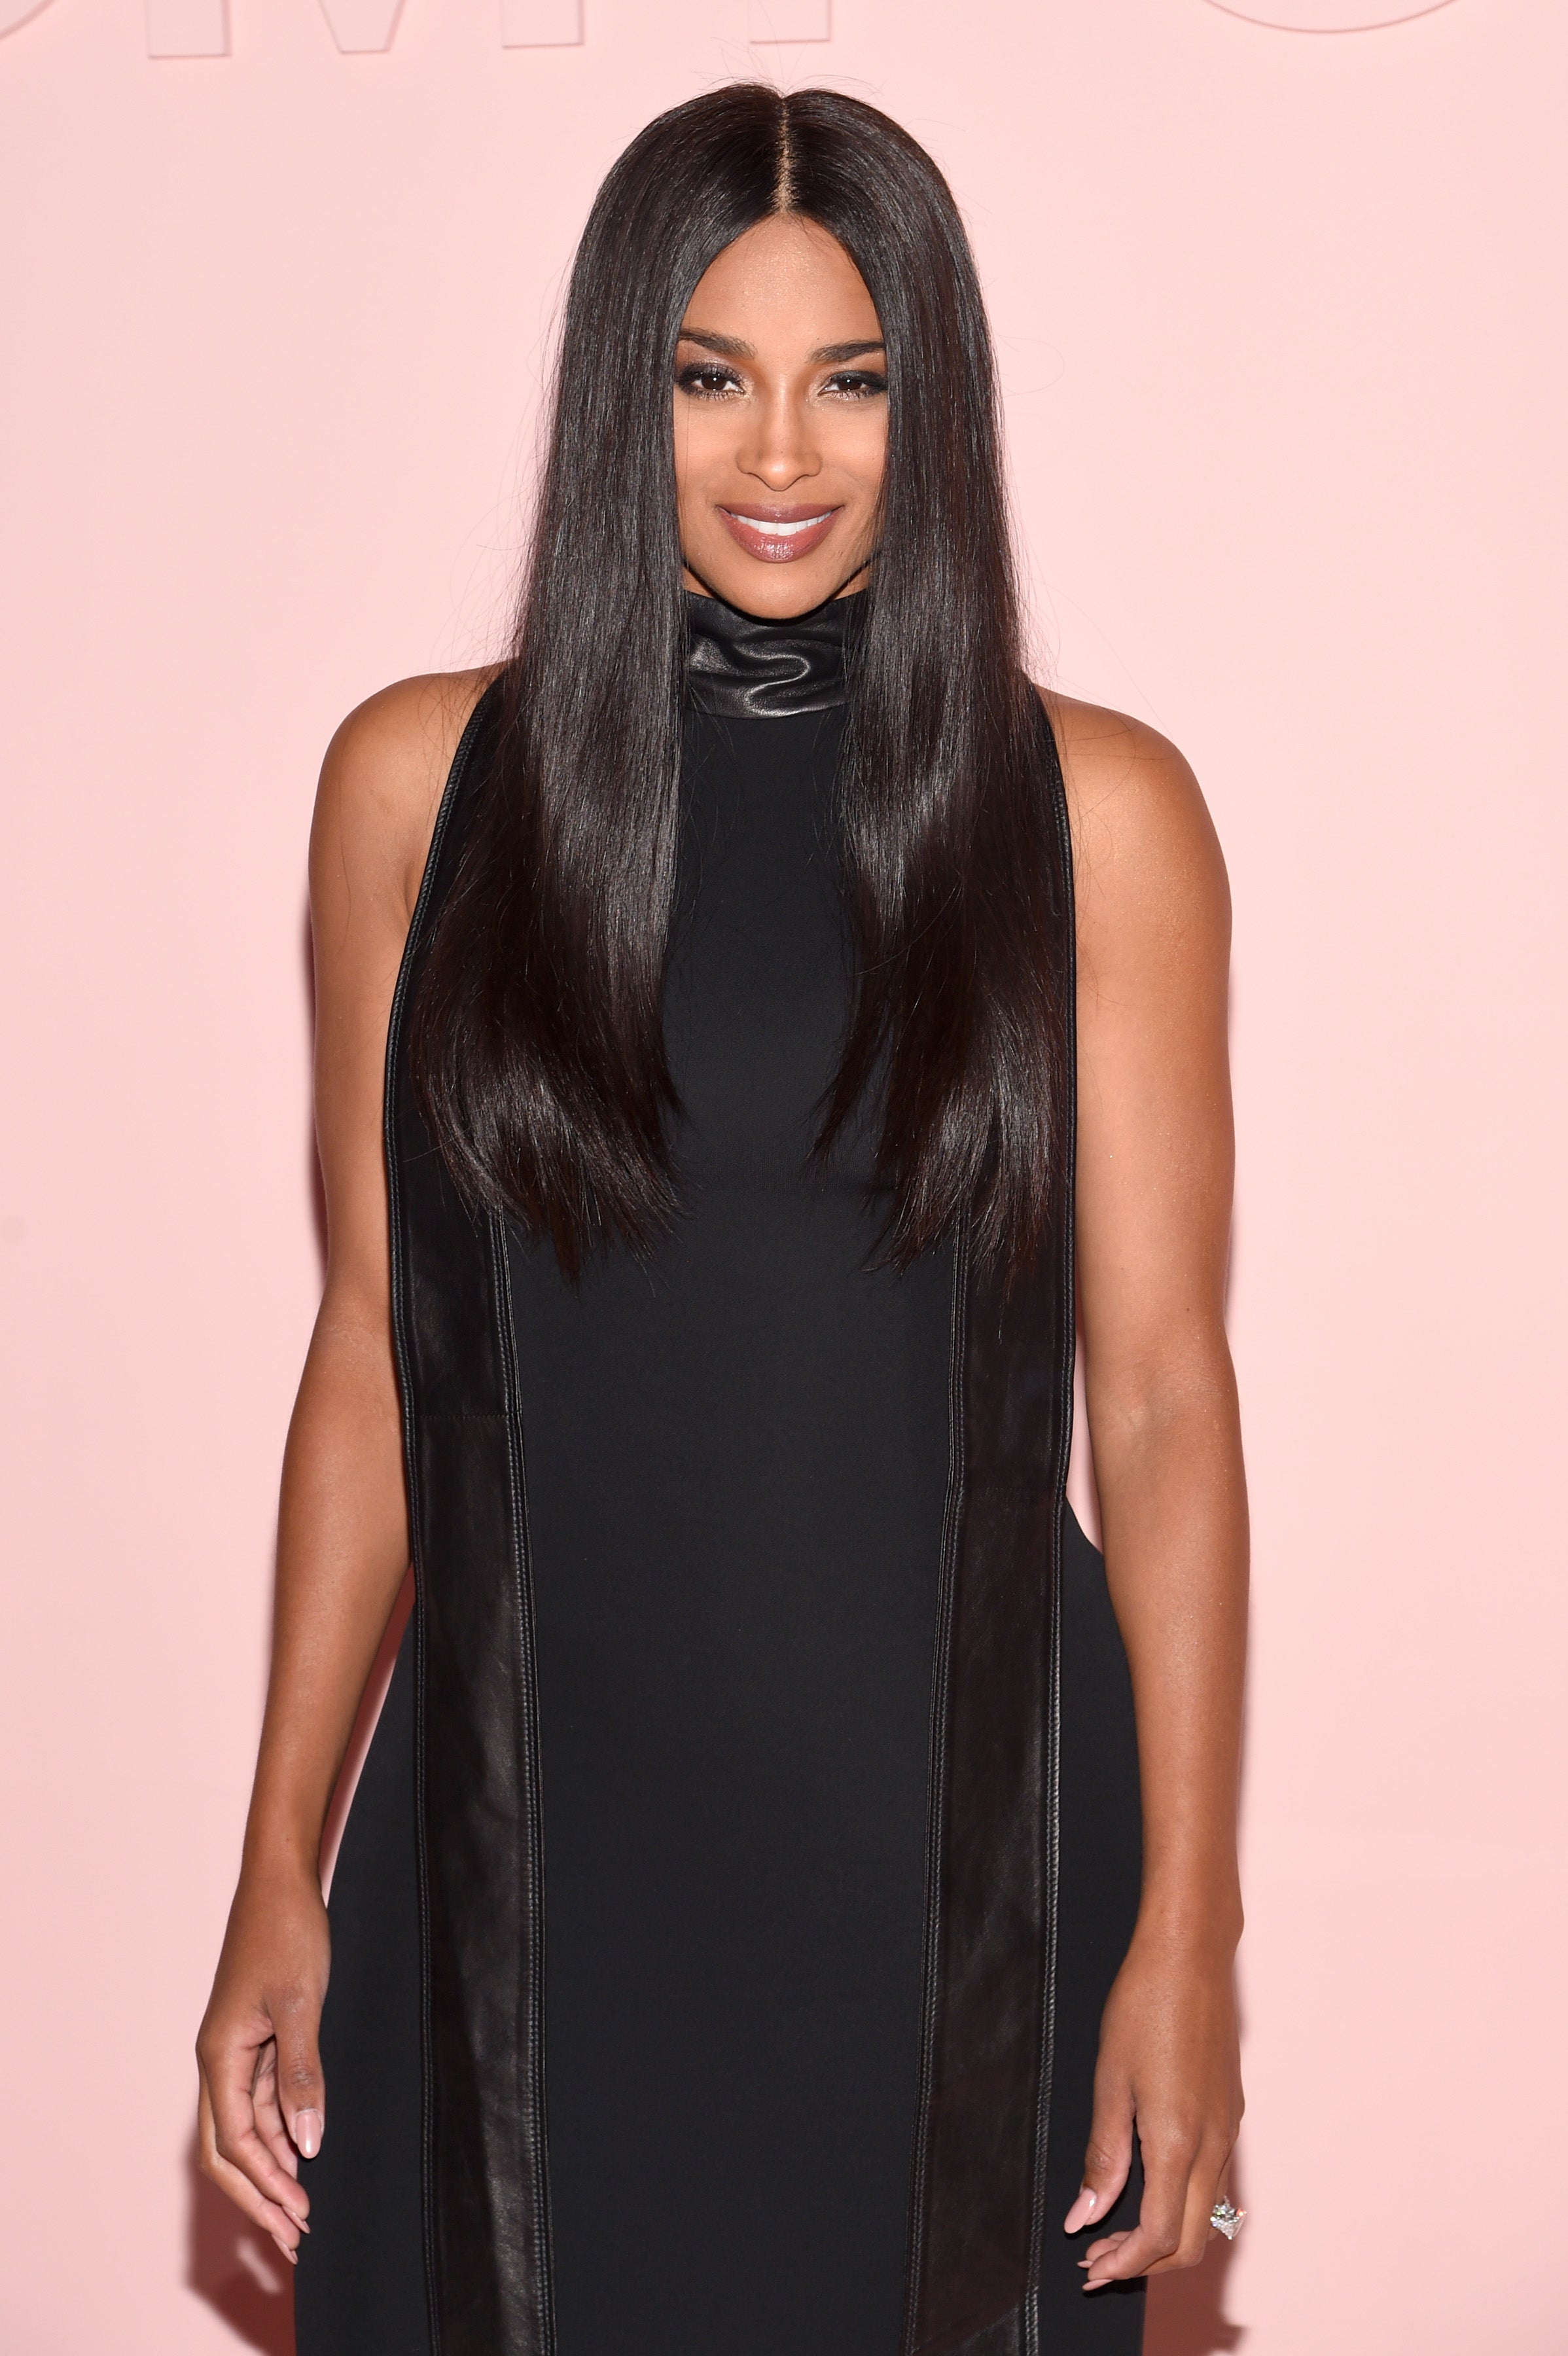 Ciara Slays in First Red Carpet Appearance Since Giving ...